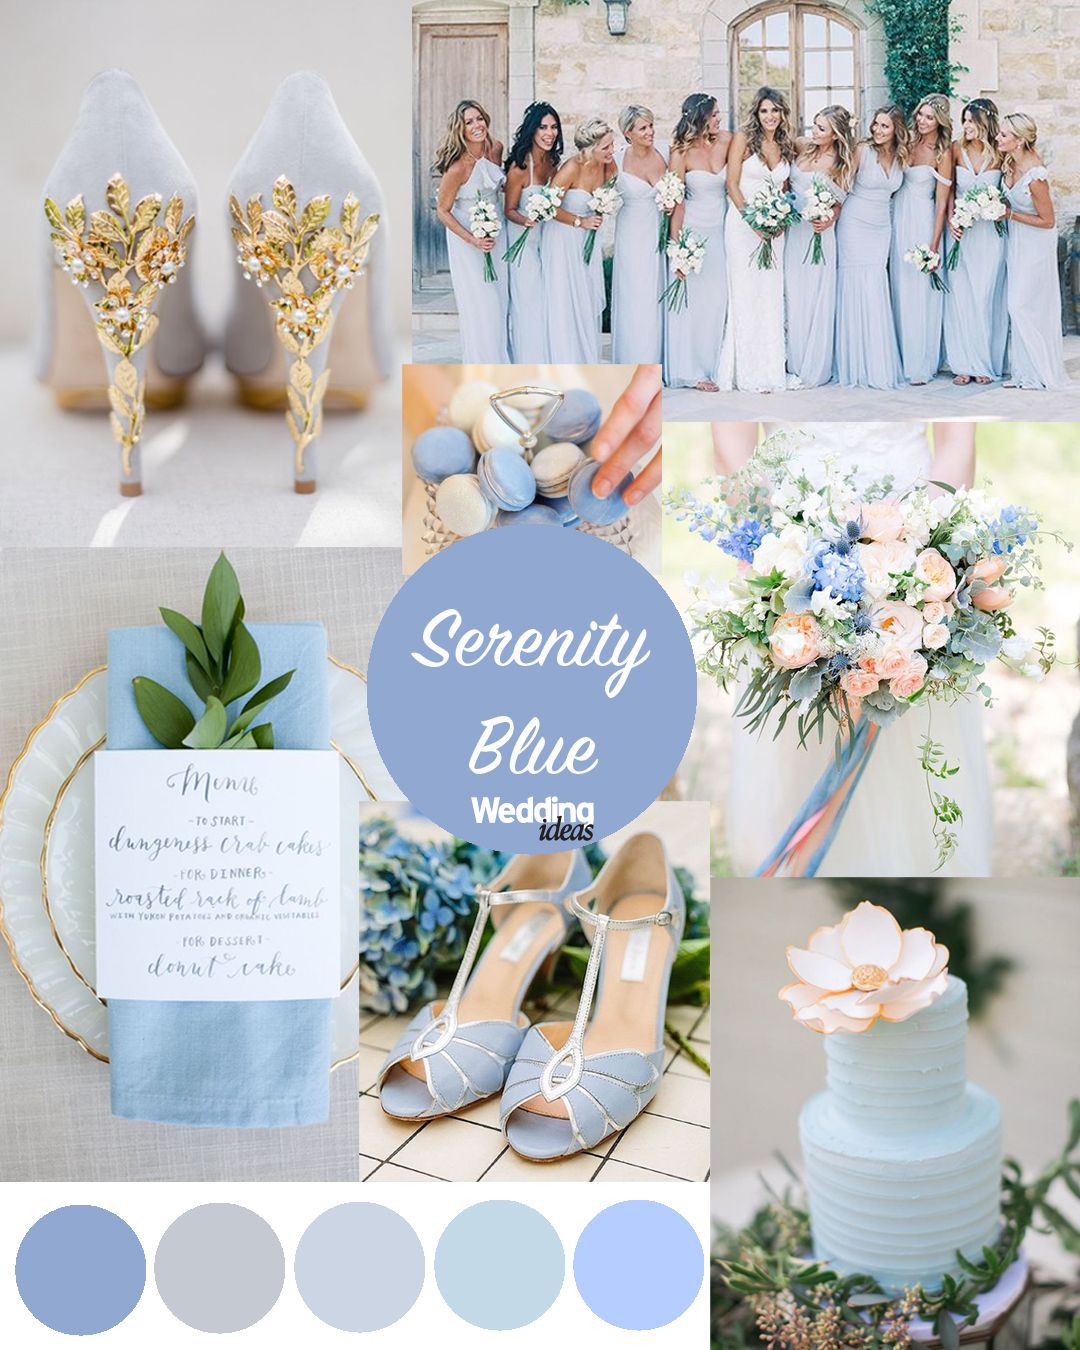 Pantone Colours Of The Year Rose Quartz Serenity Blue Wedding Ideas Magazine Wedding Theme Colors Spring Wedding Colors Blue Themed Wedding